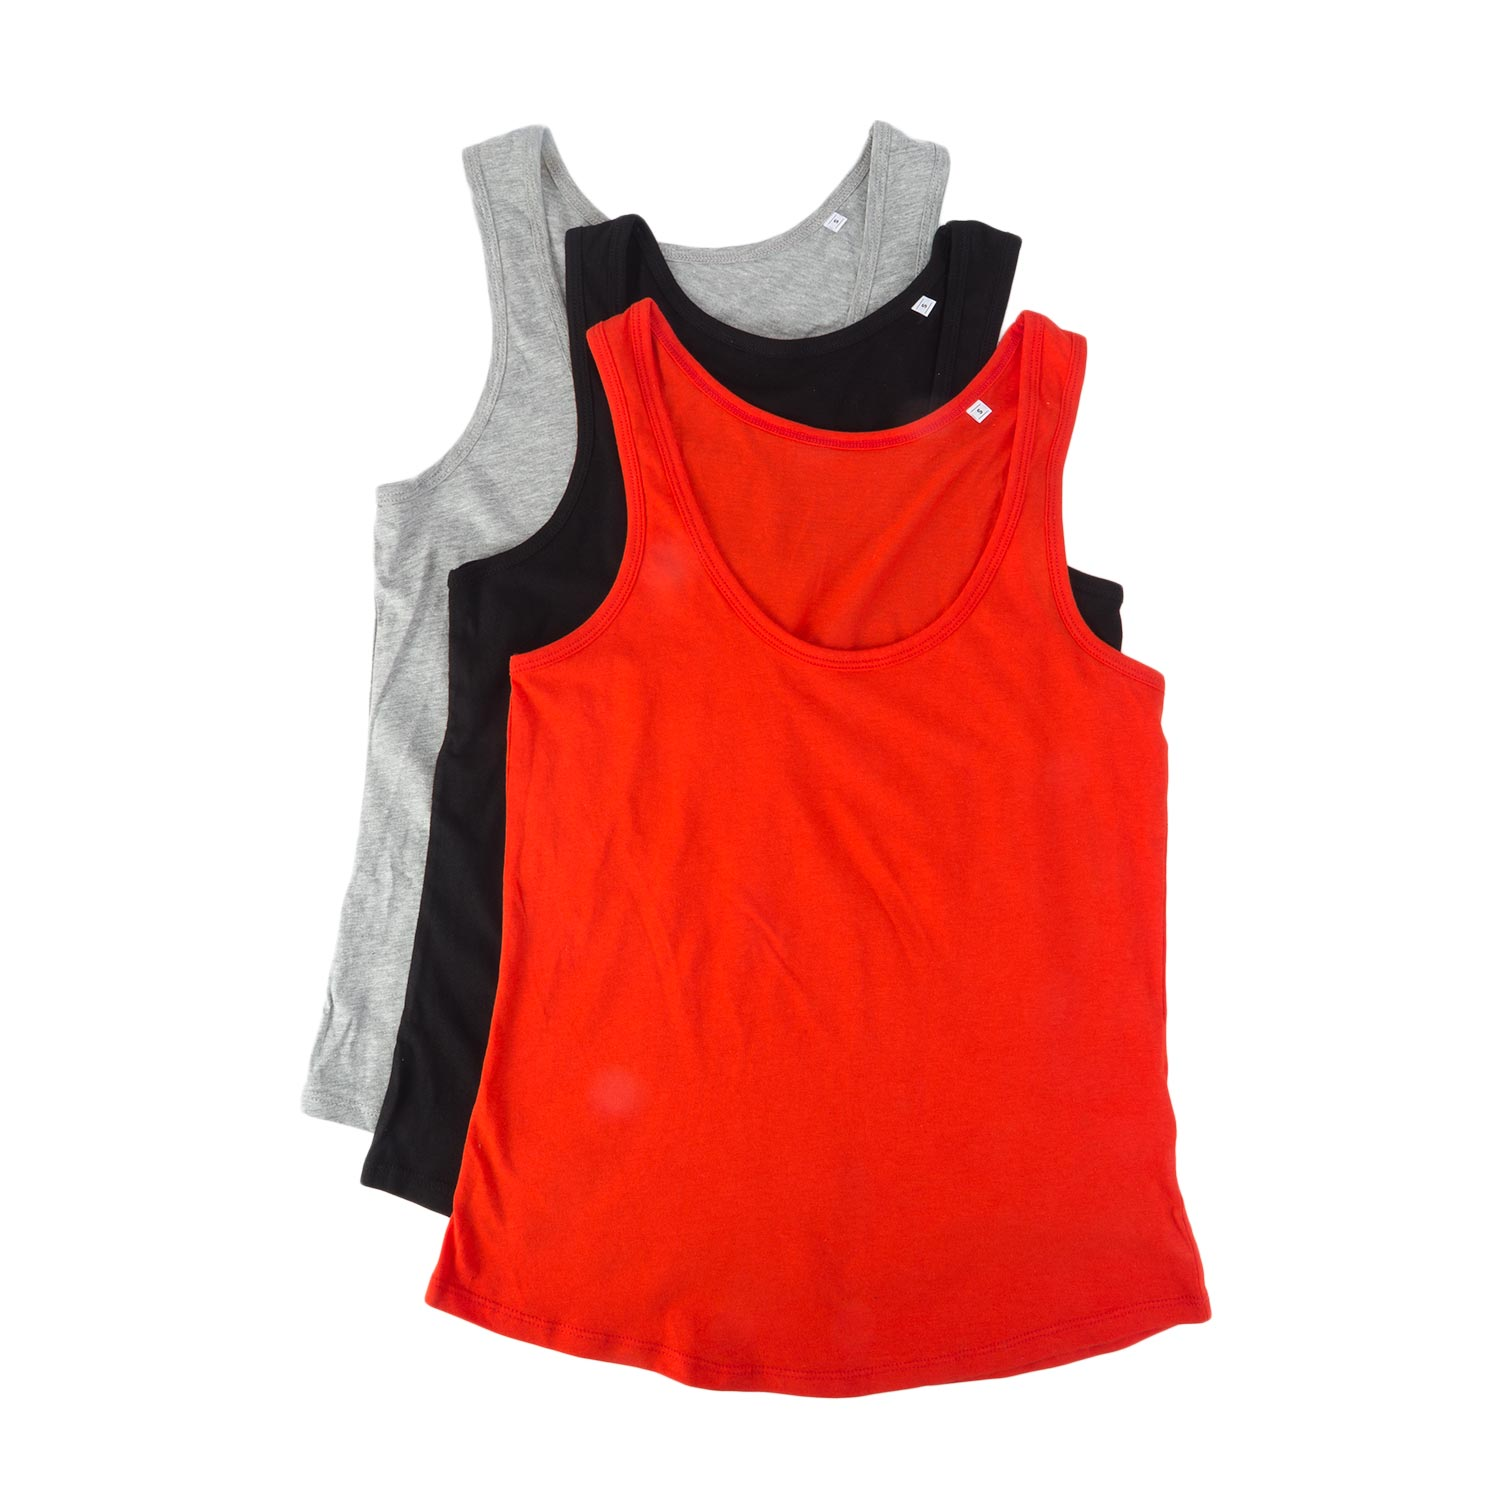 B&C Inspire Ladies' Organic Tanks